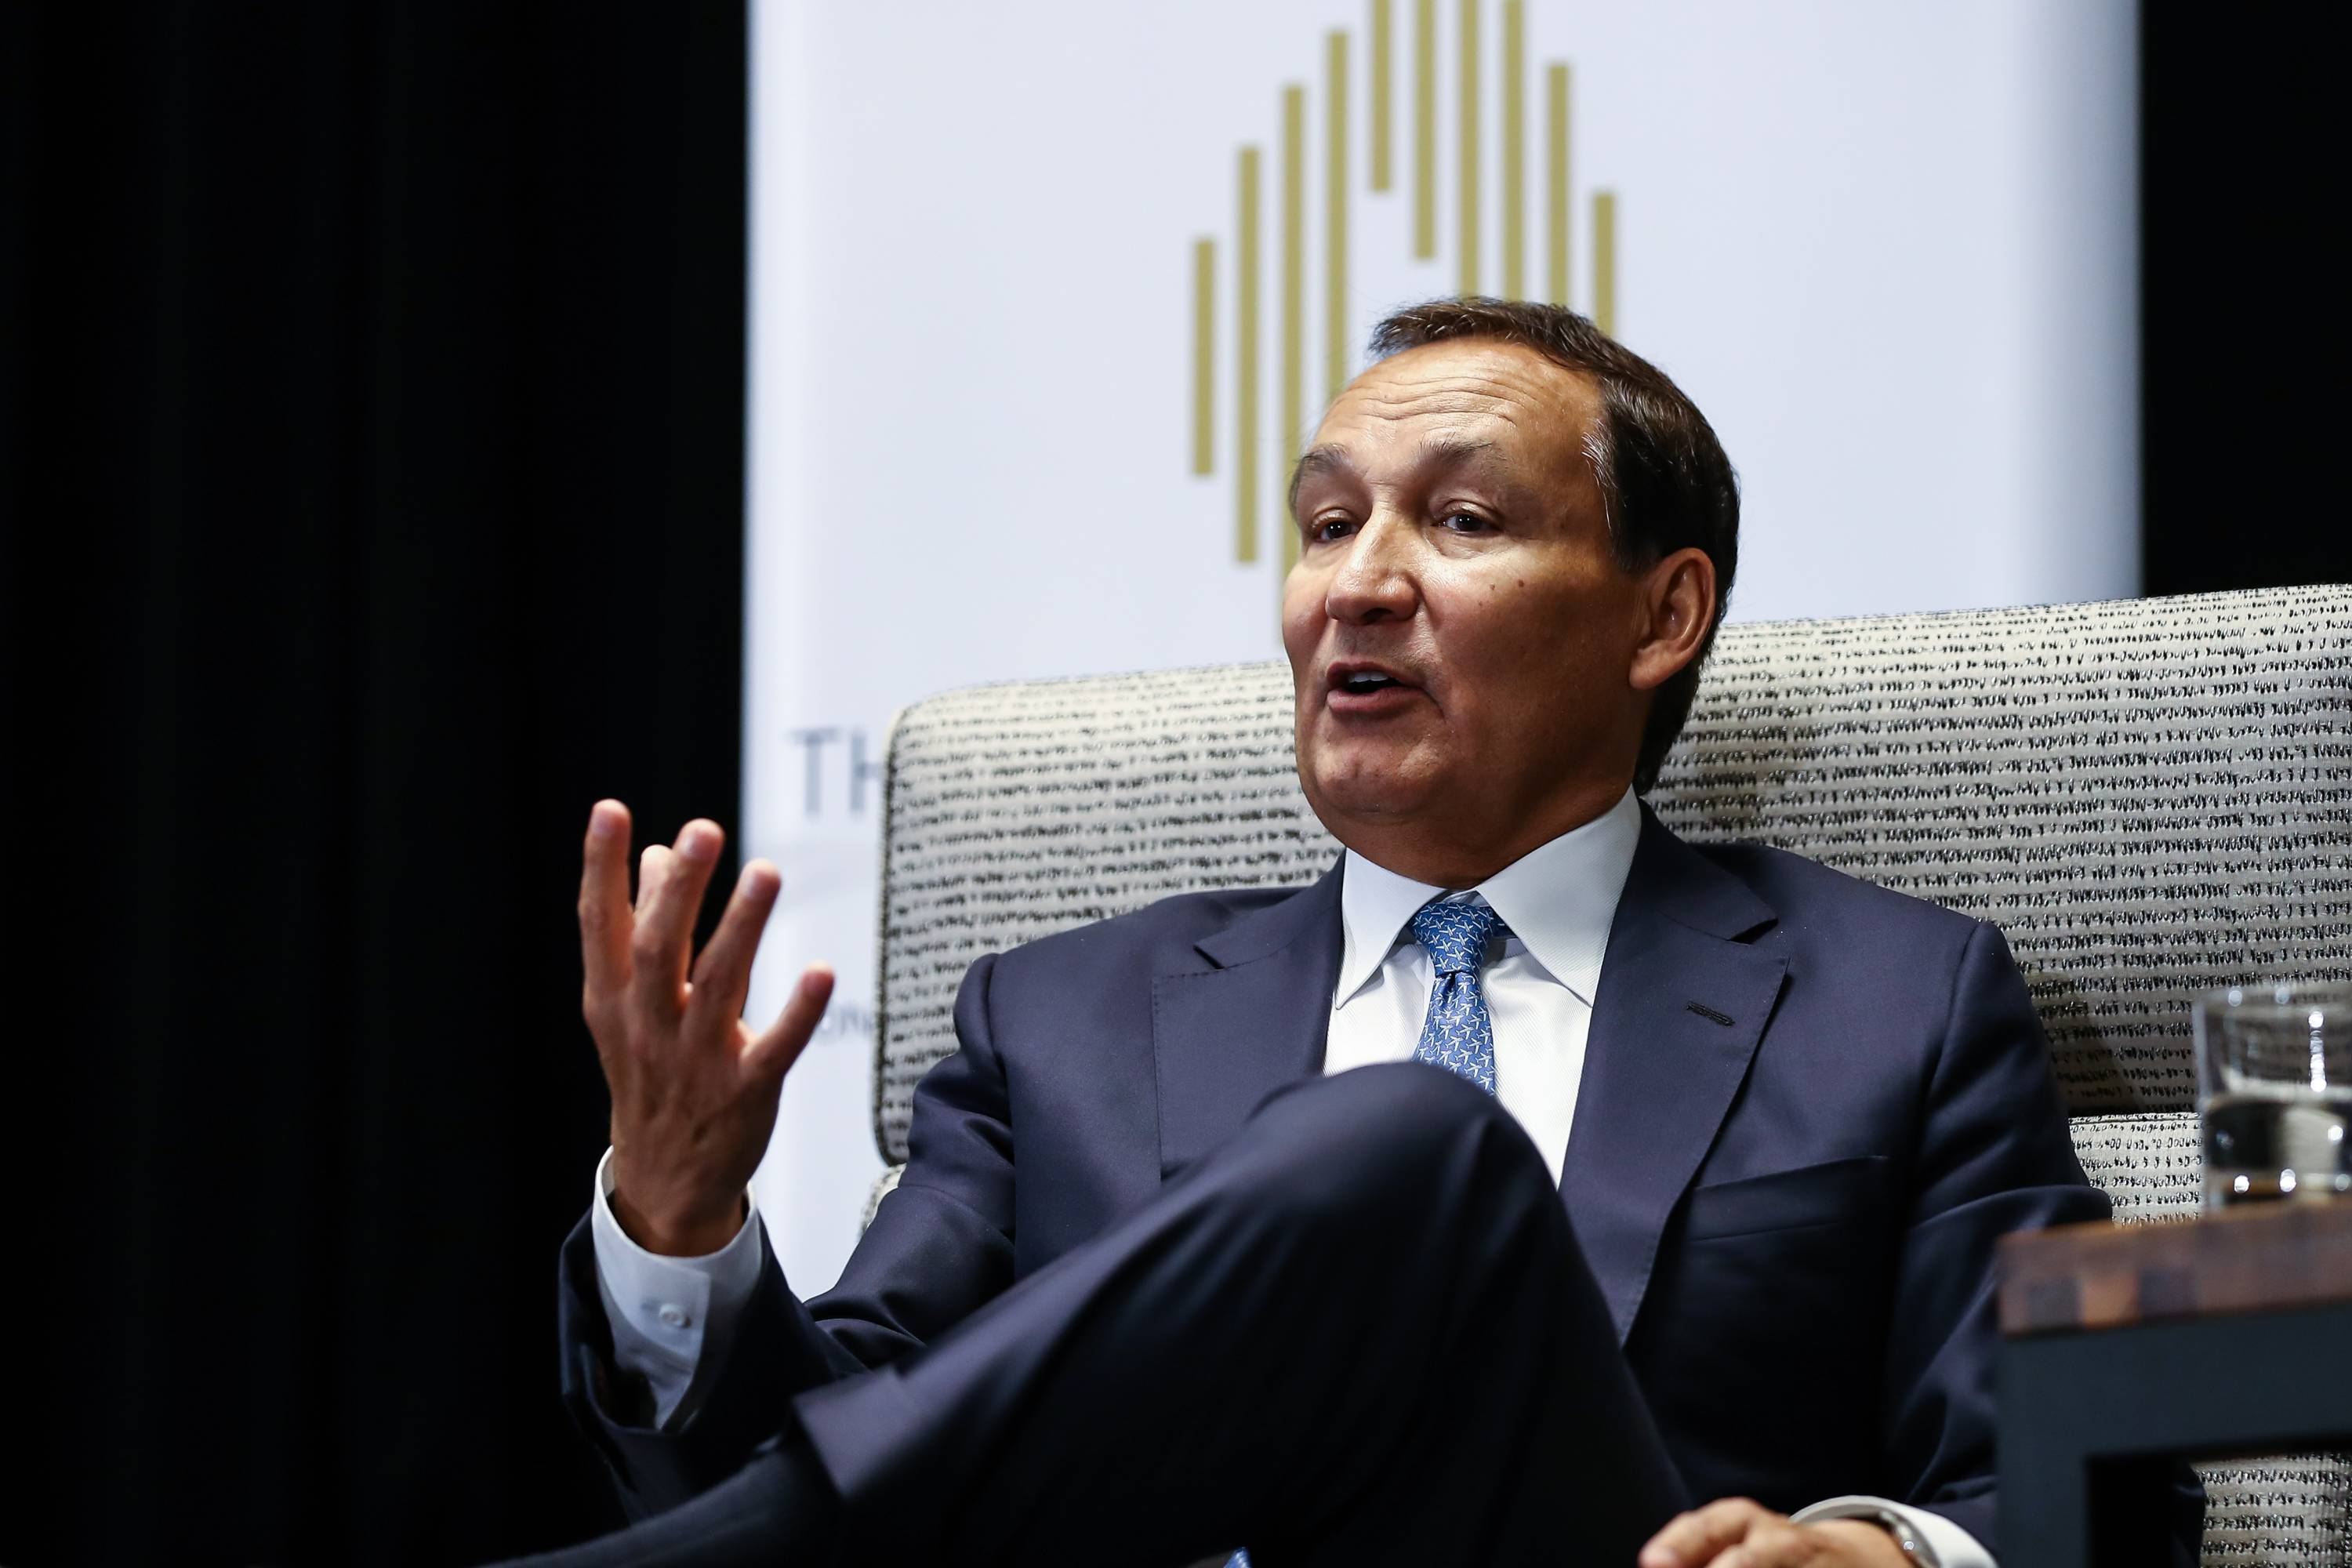 United Airlines Chief Executive Officer Oscar Munoz